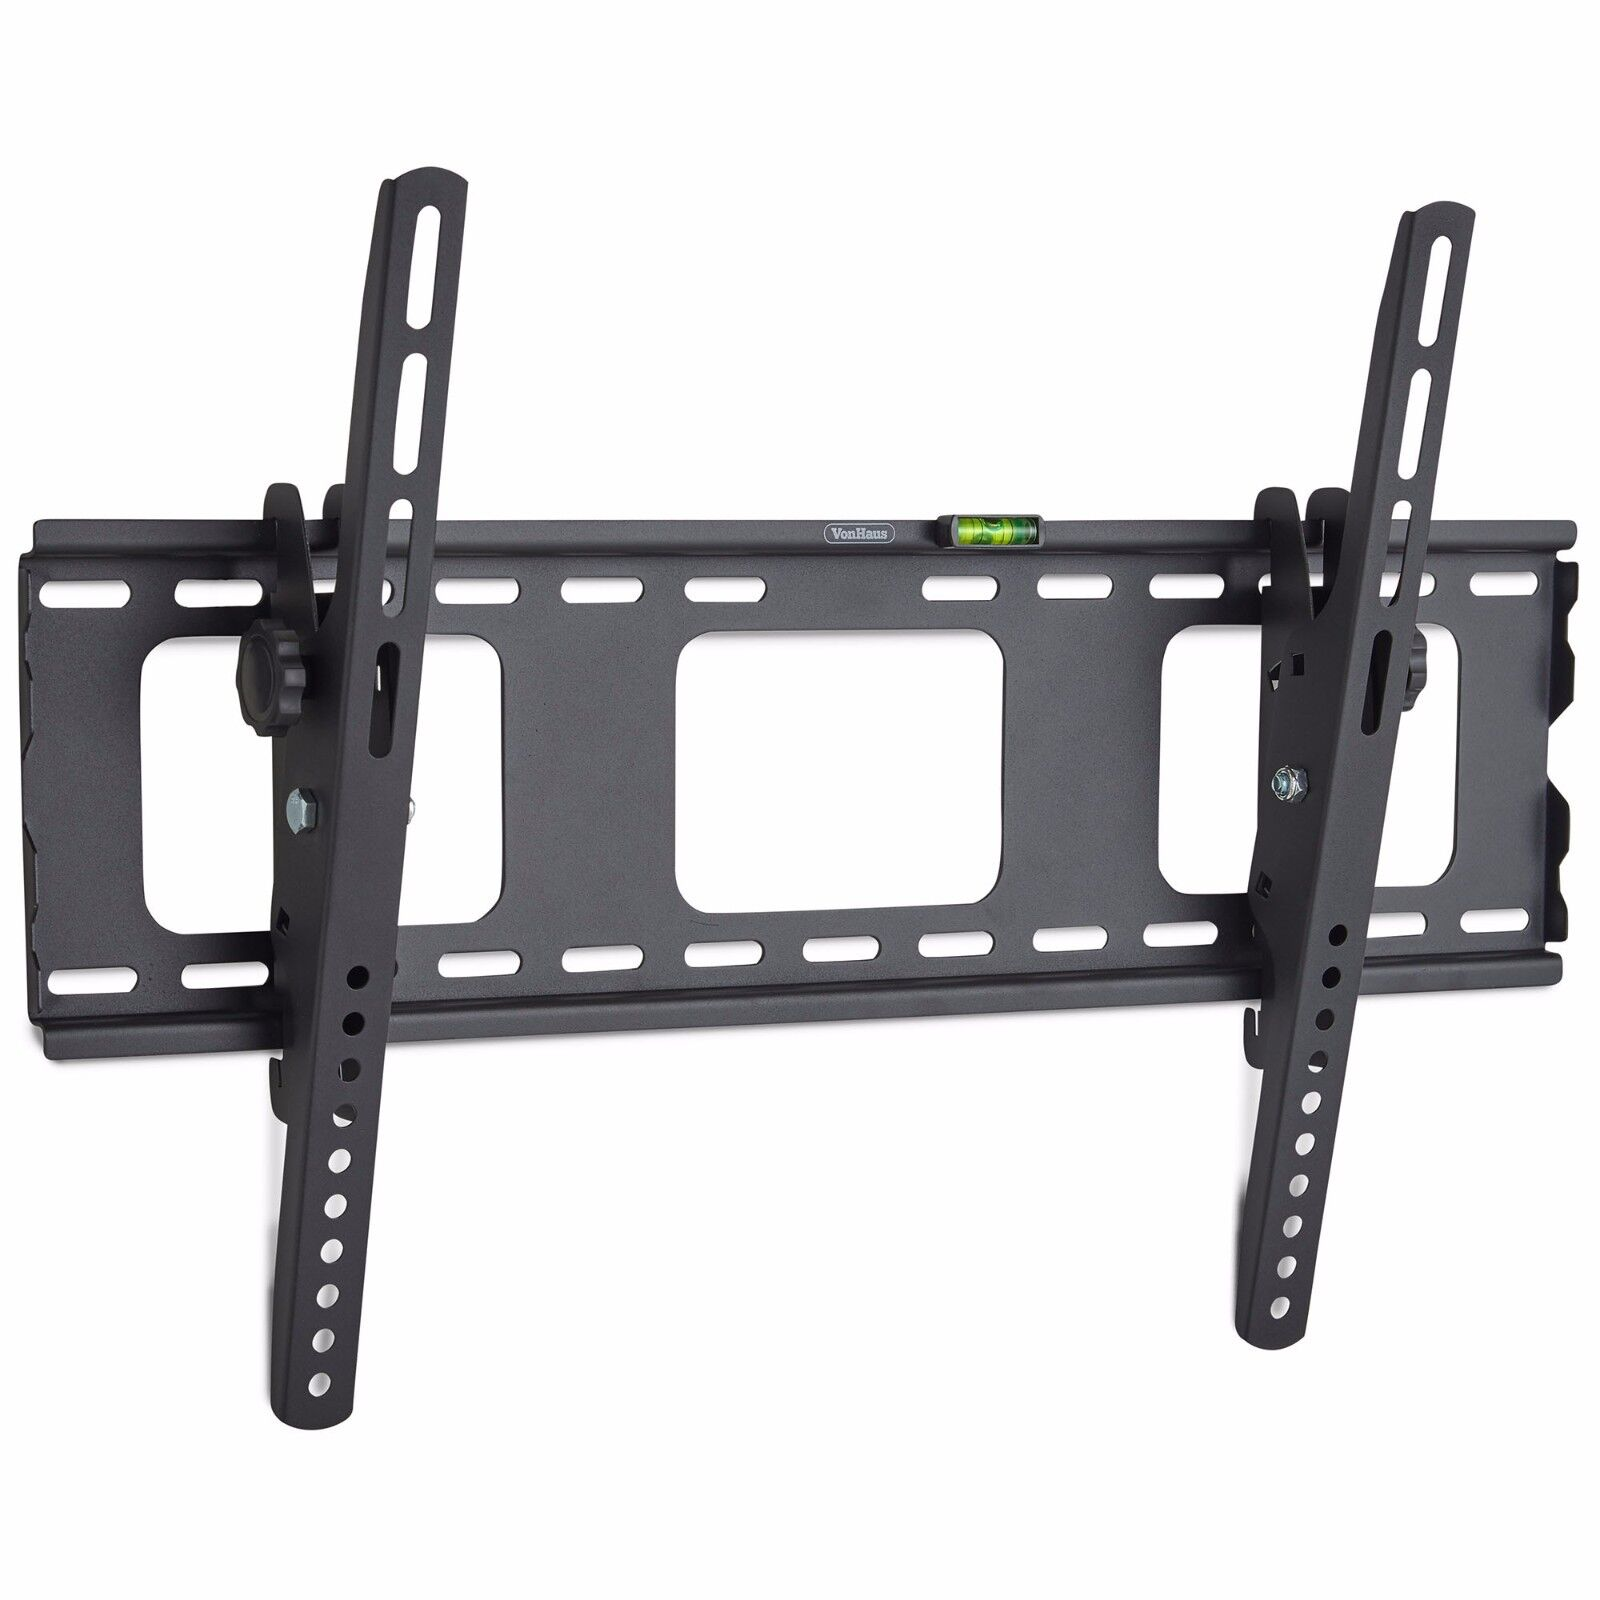 "VonHaus 32-70"" Tilt TV Wall Mount Bracket with Spirit Level & Locking Bar"